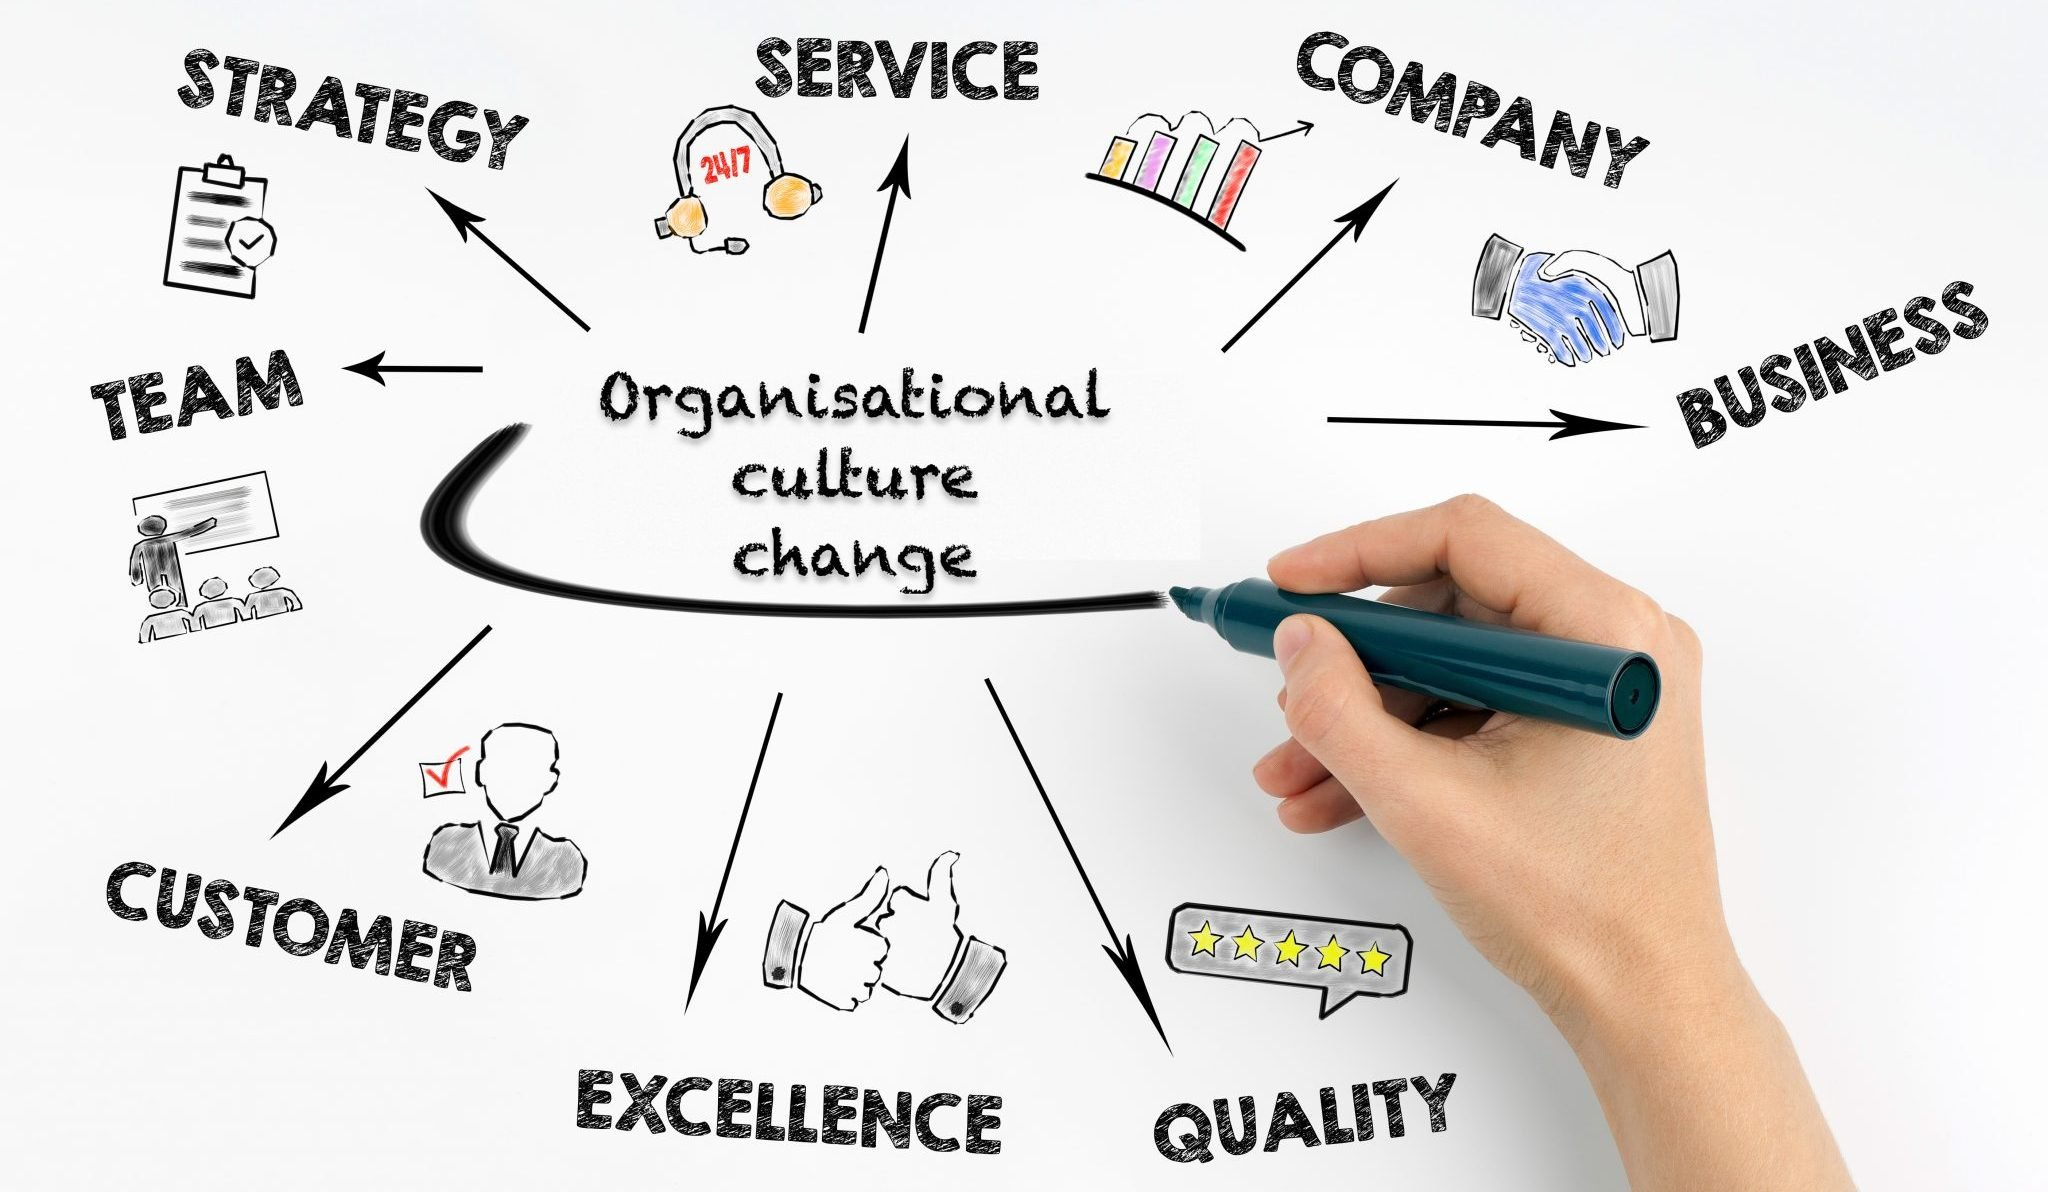 We should give organisational culture the seriousness it deserves